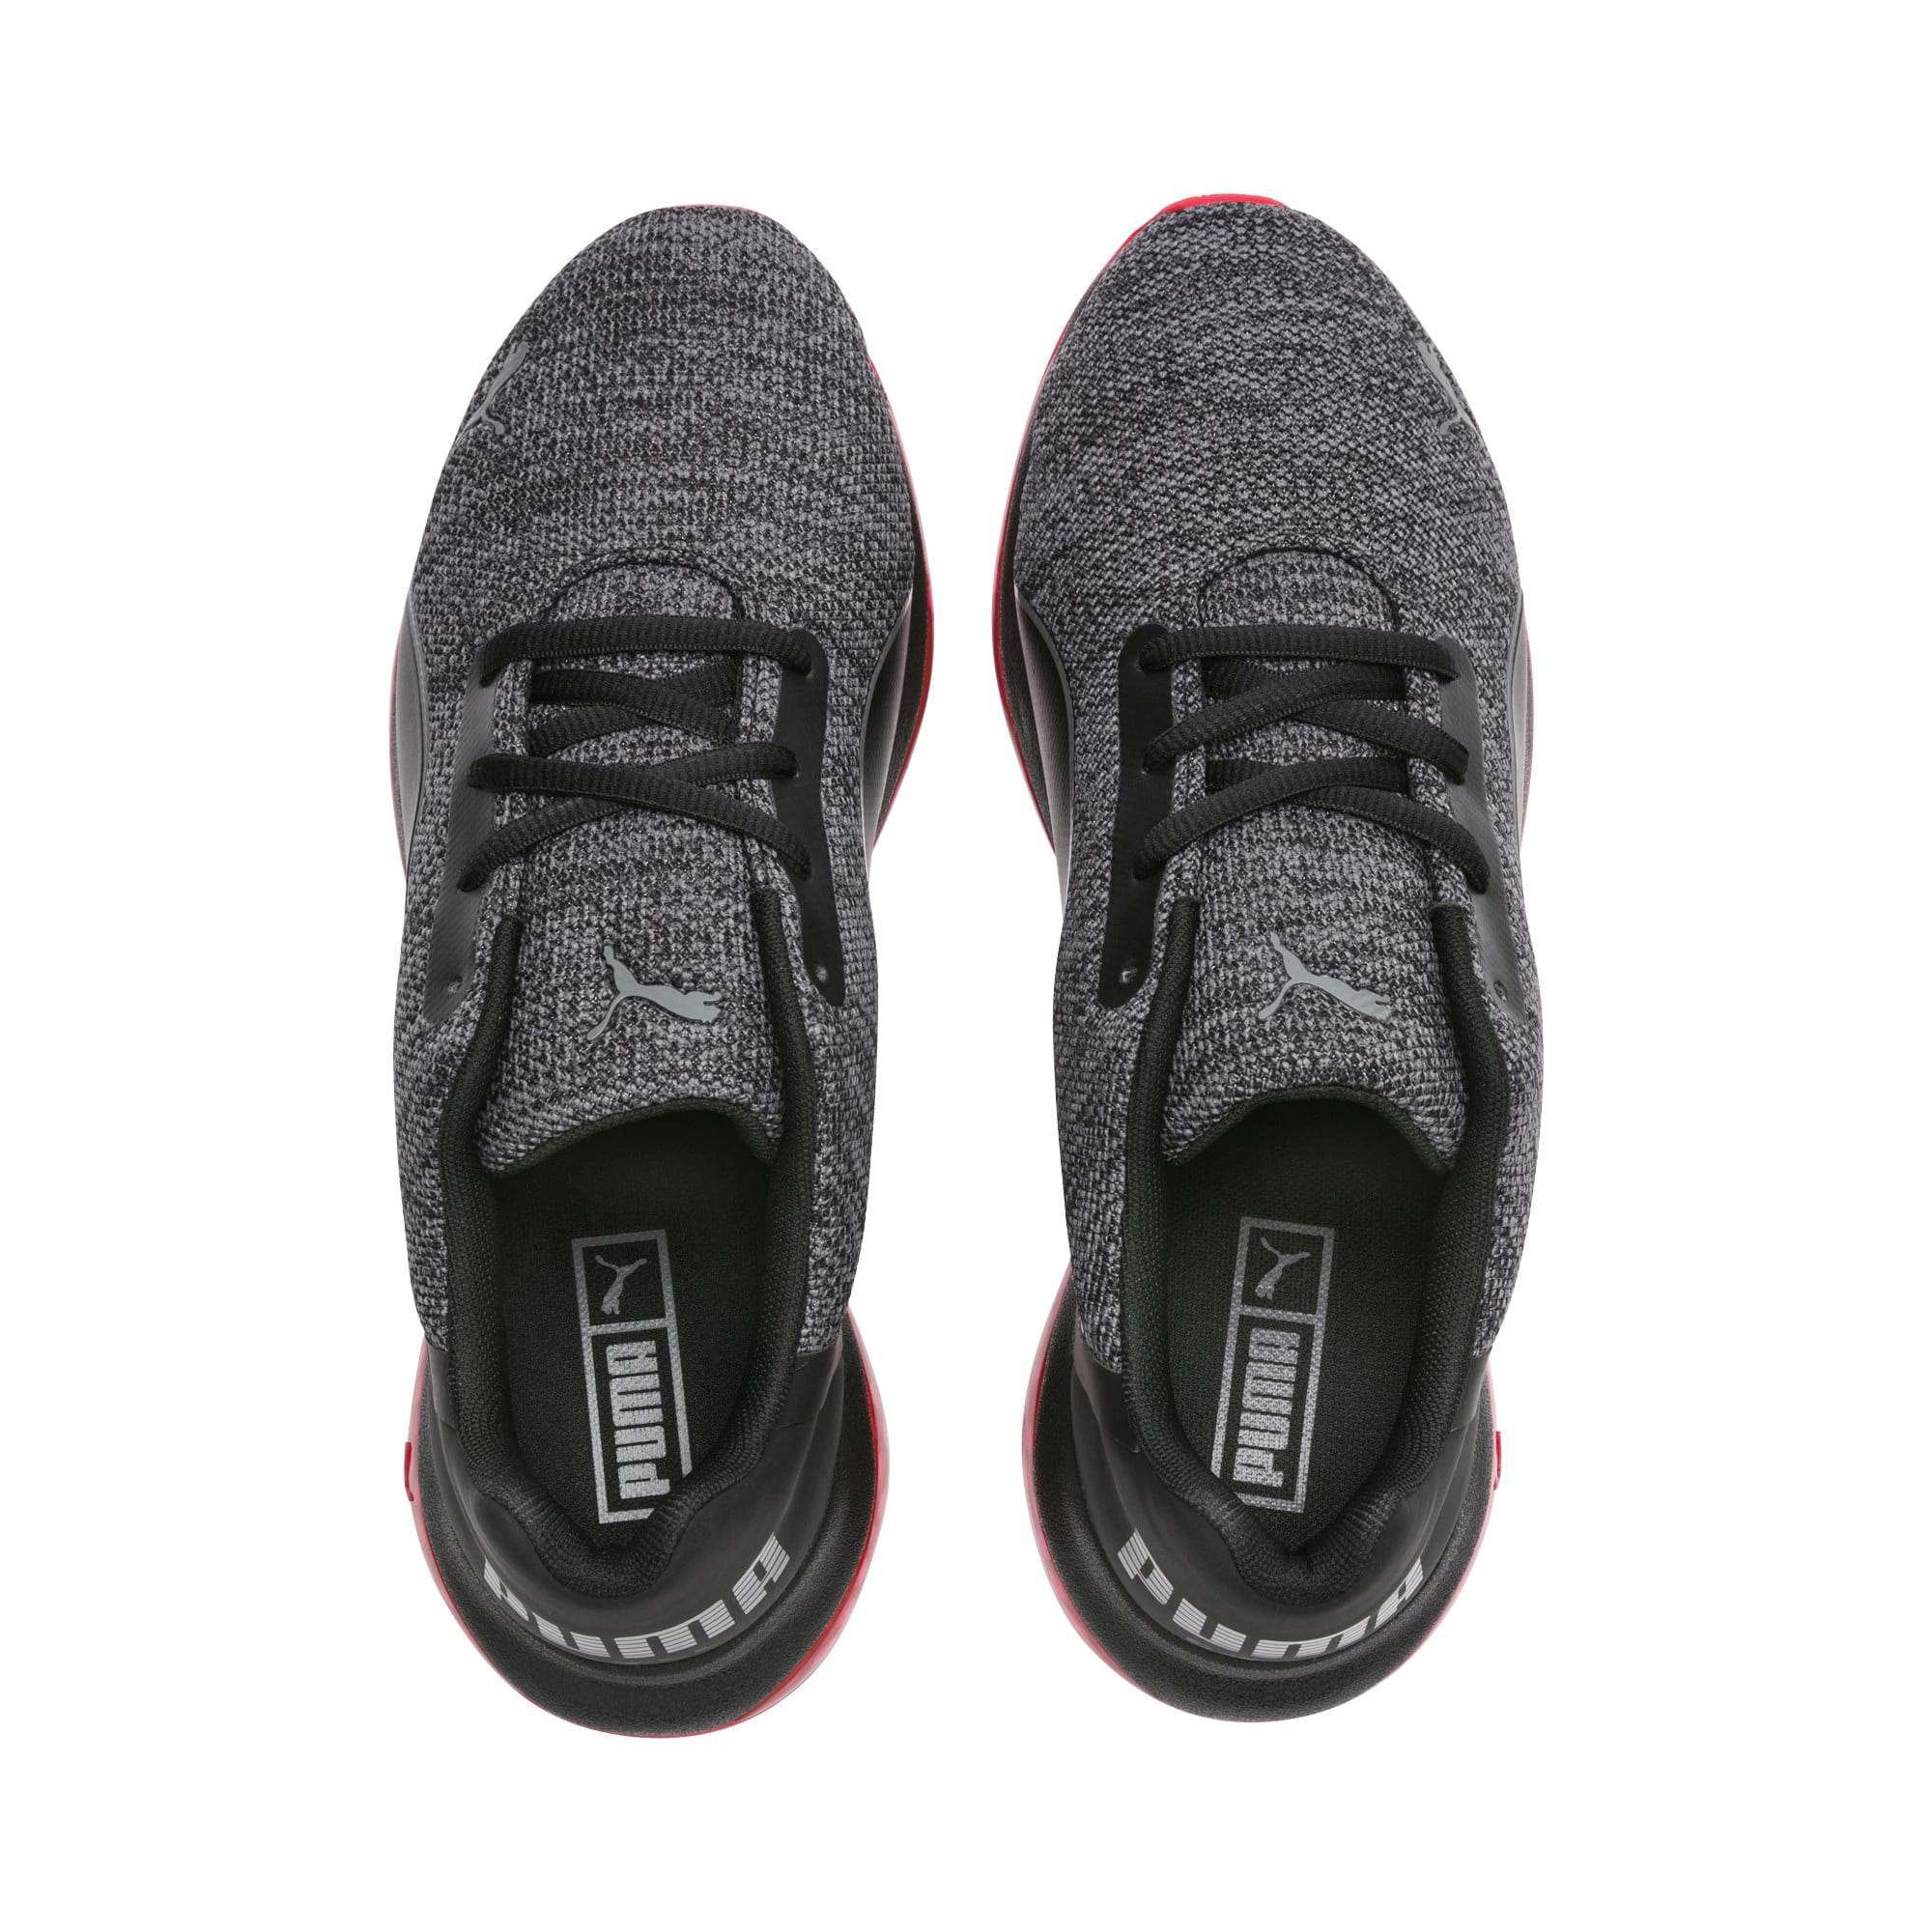 Thumbnail 4 of CELL Ultimate Knit Training Shoes, Pma Blk-QUIET SHDE-Rbbon Red, medium